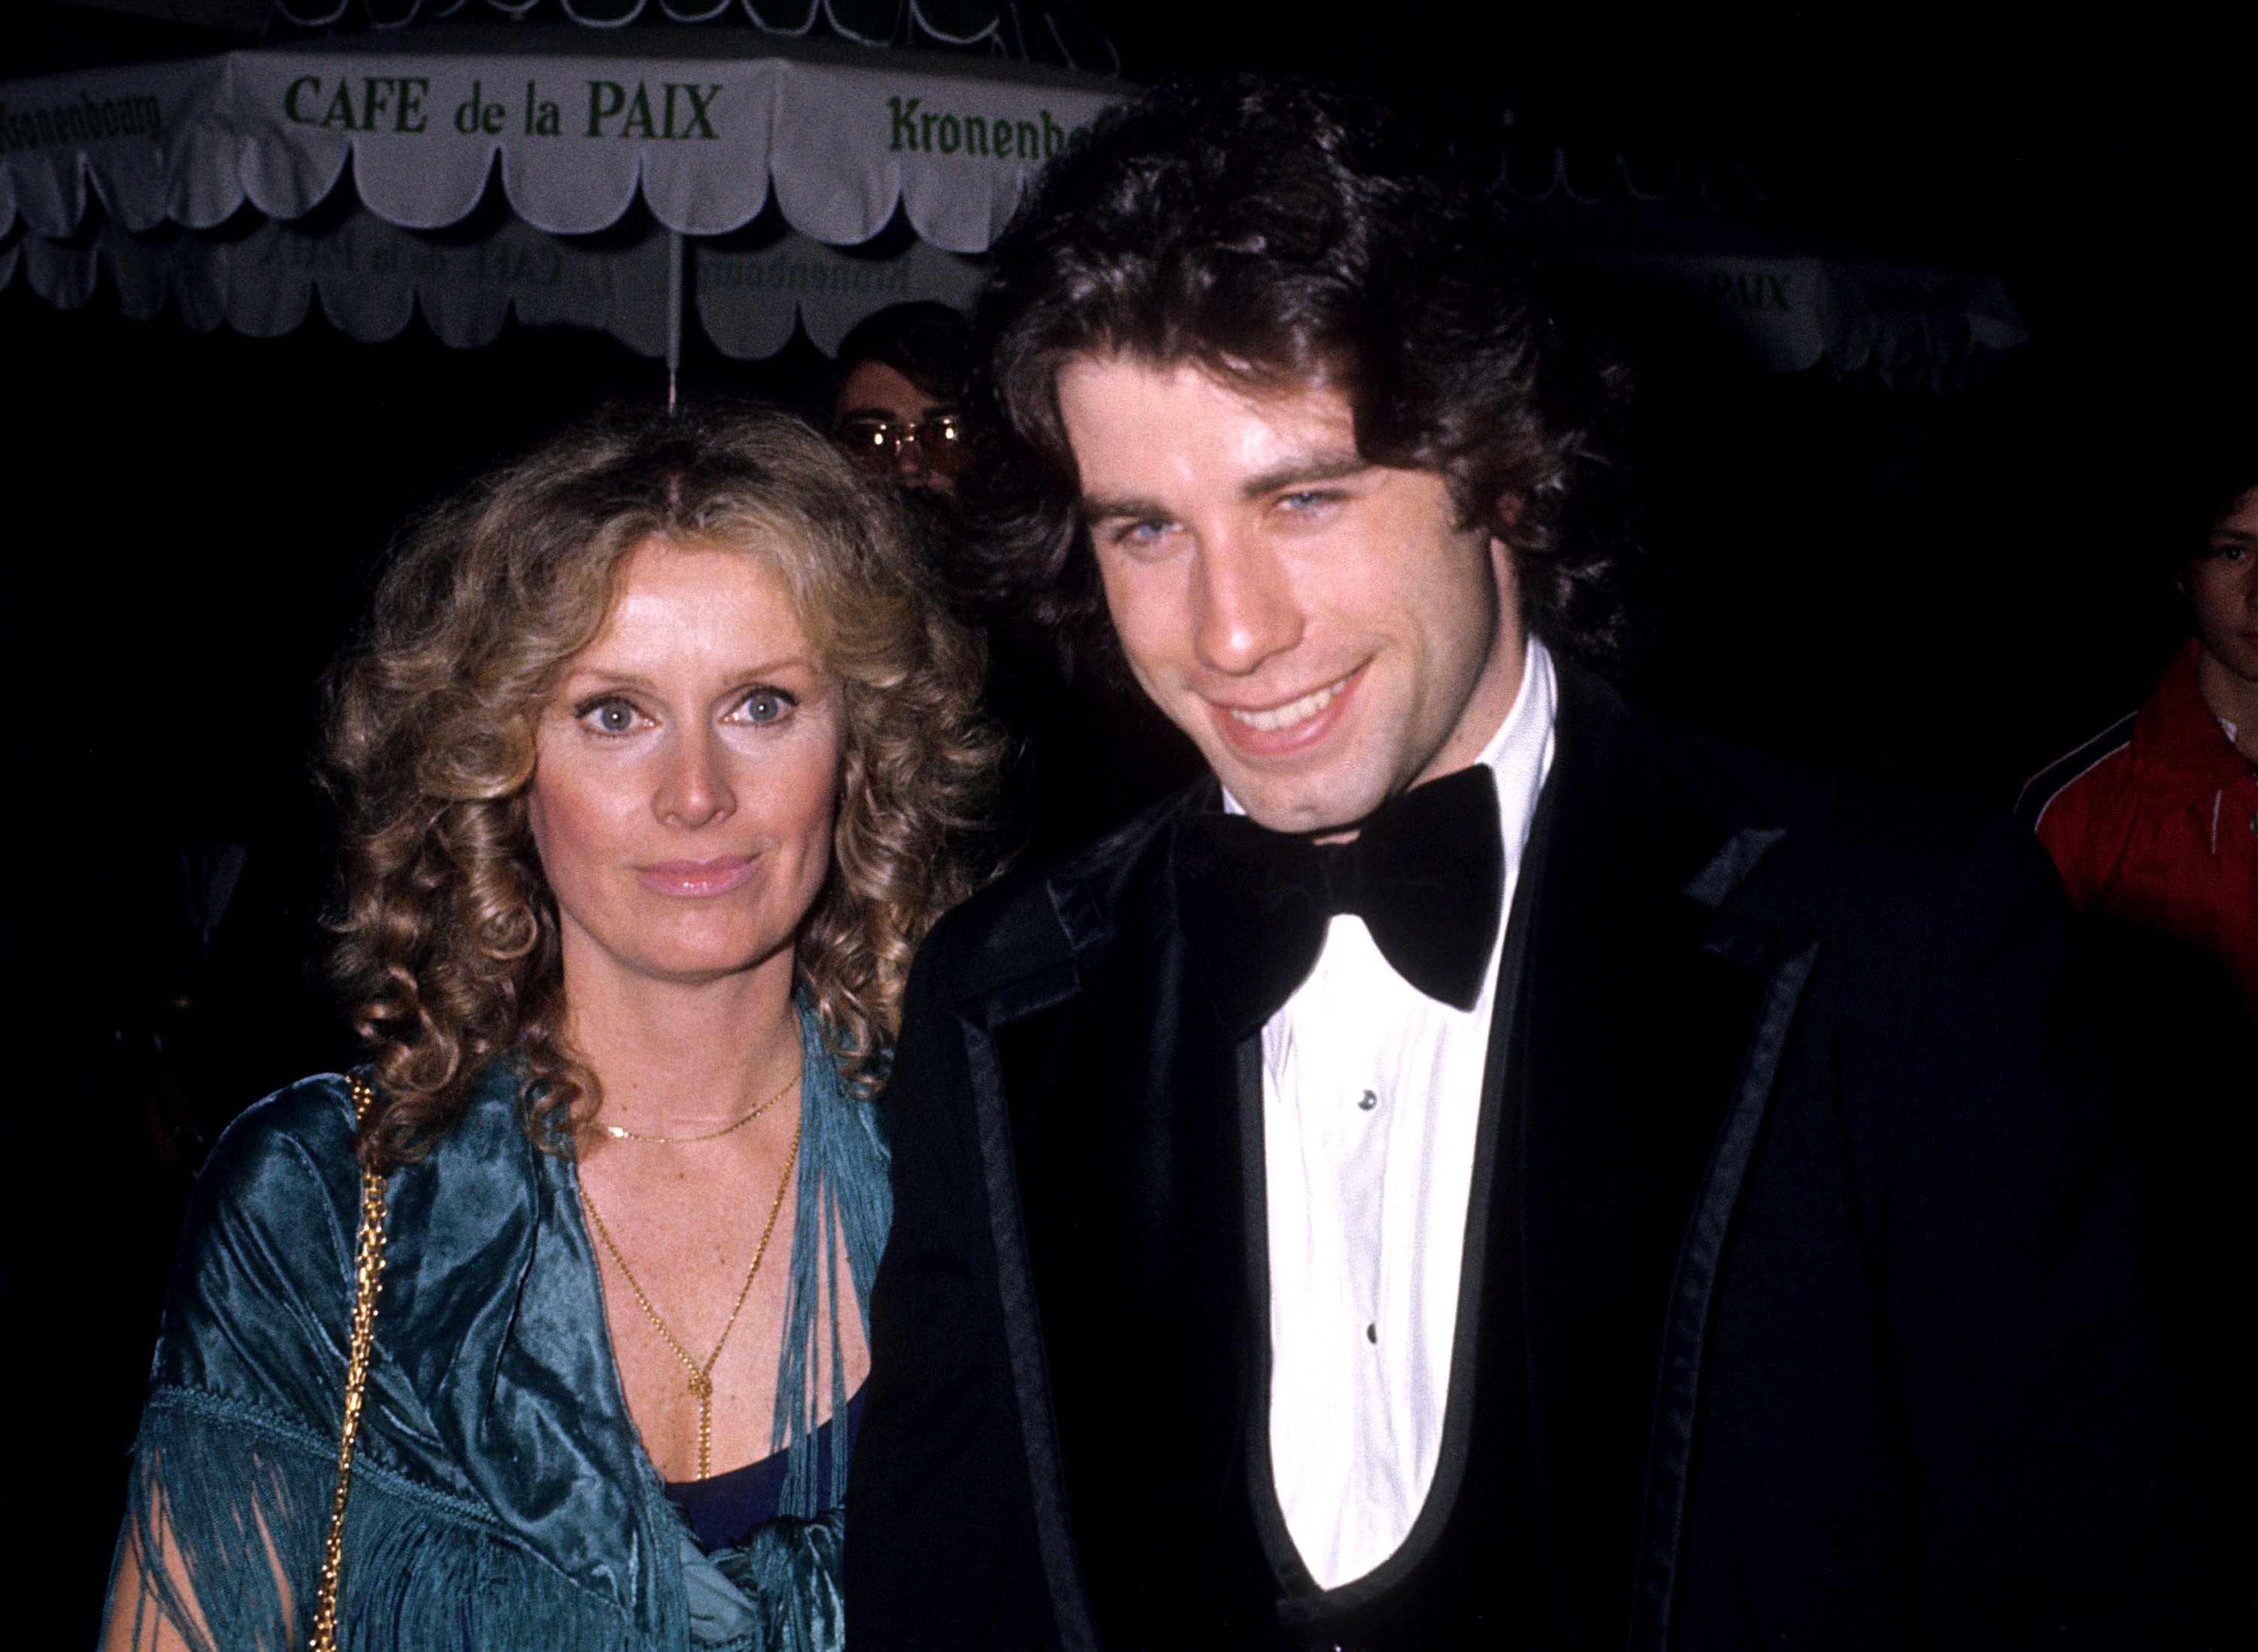 John Travolta and Diana Hyland in Los Angeles on December 8th 1976 | Source: Getty Images